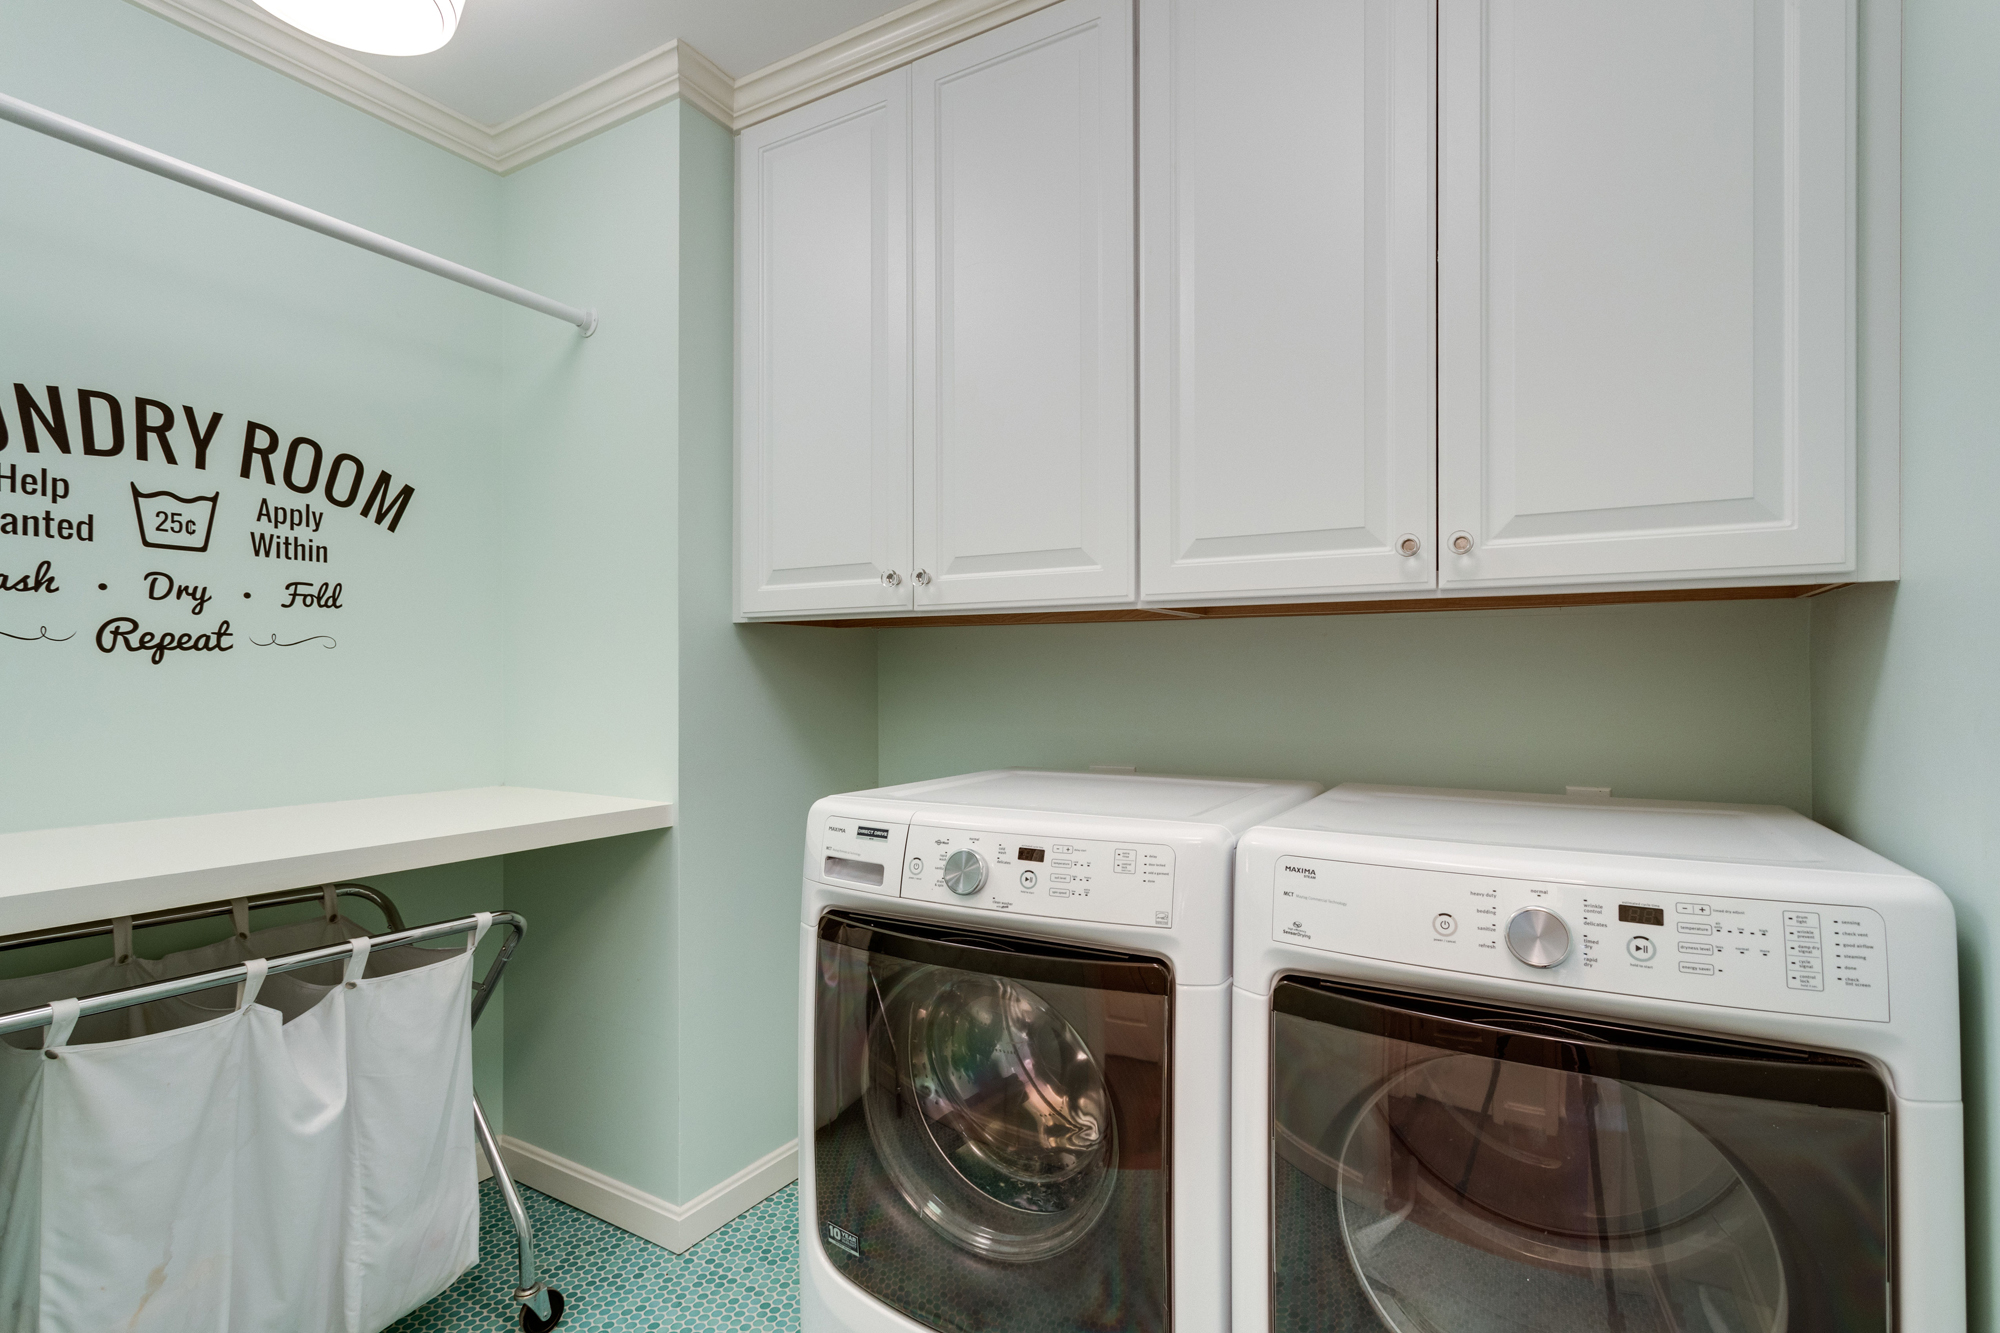 Please Sit Back Relax And Enjoy Perusing This Photo Gallery Of Our Recent Laundry Room Projects We D Love To Hear From You If Something Piques Your